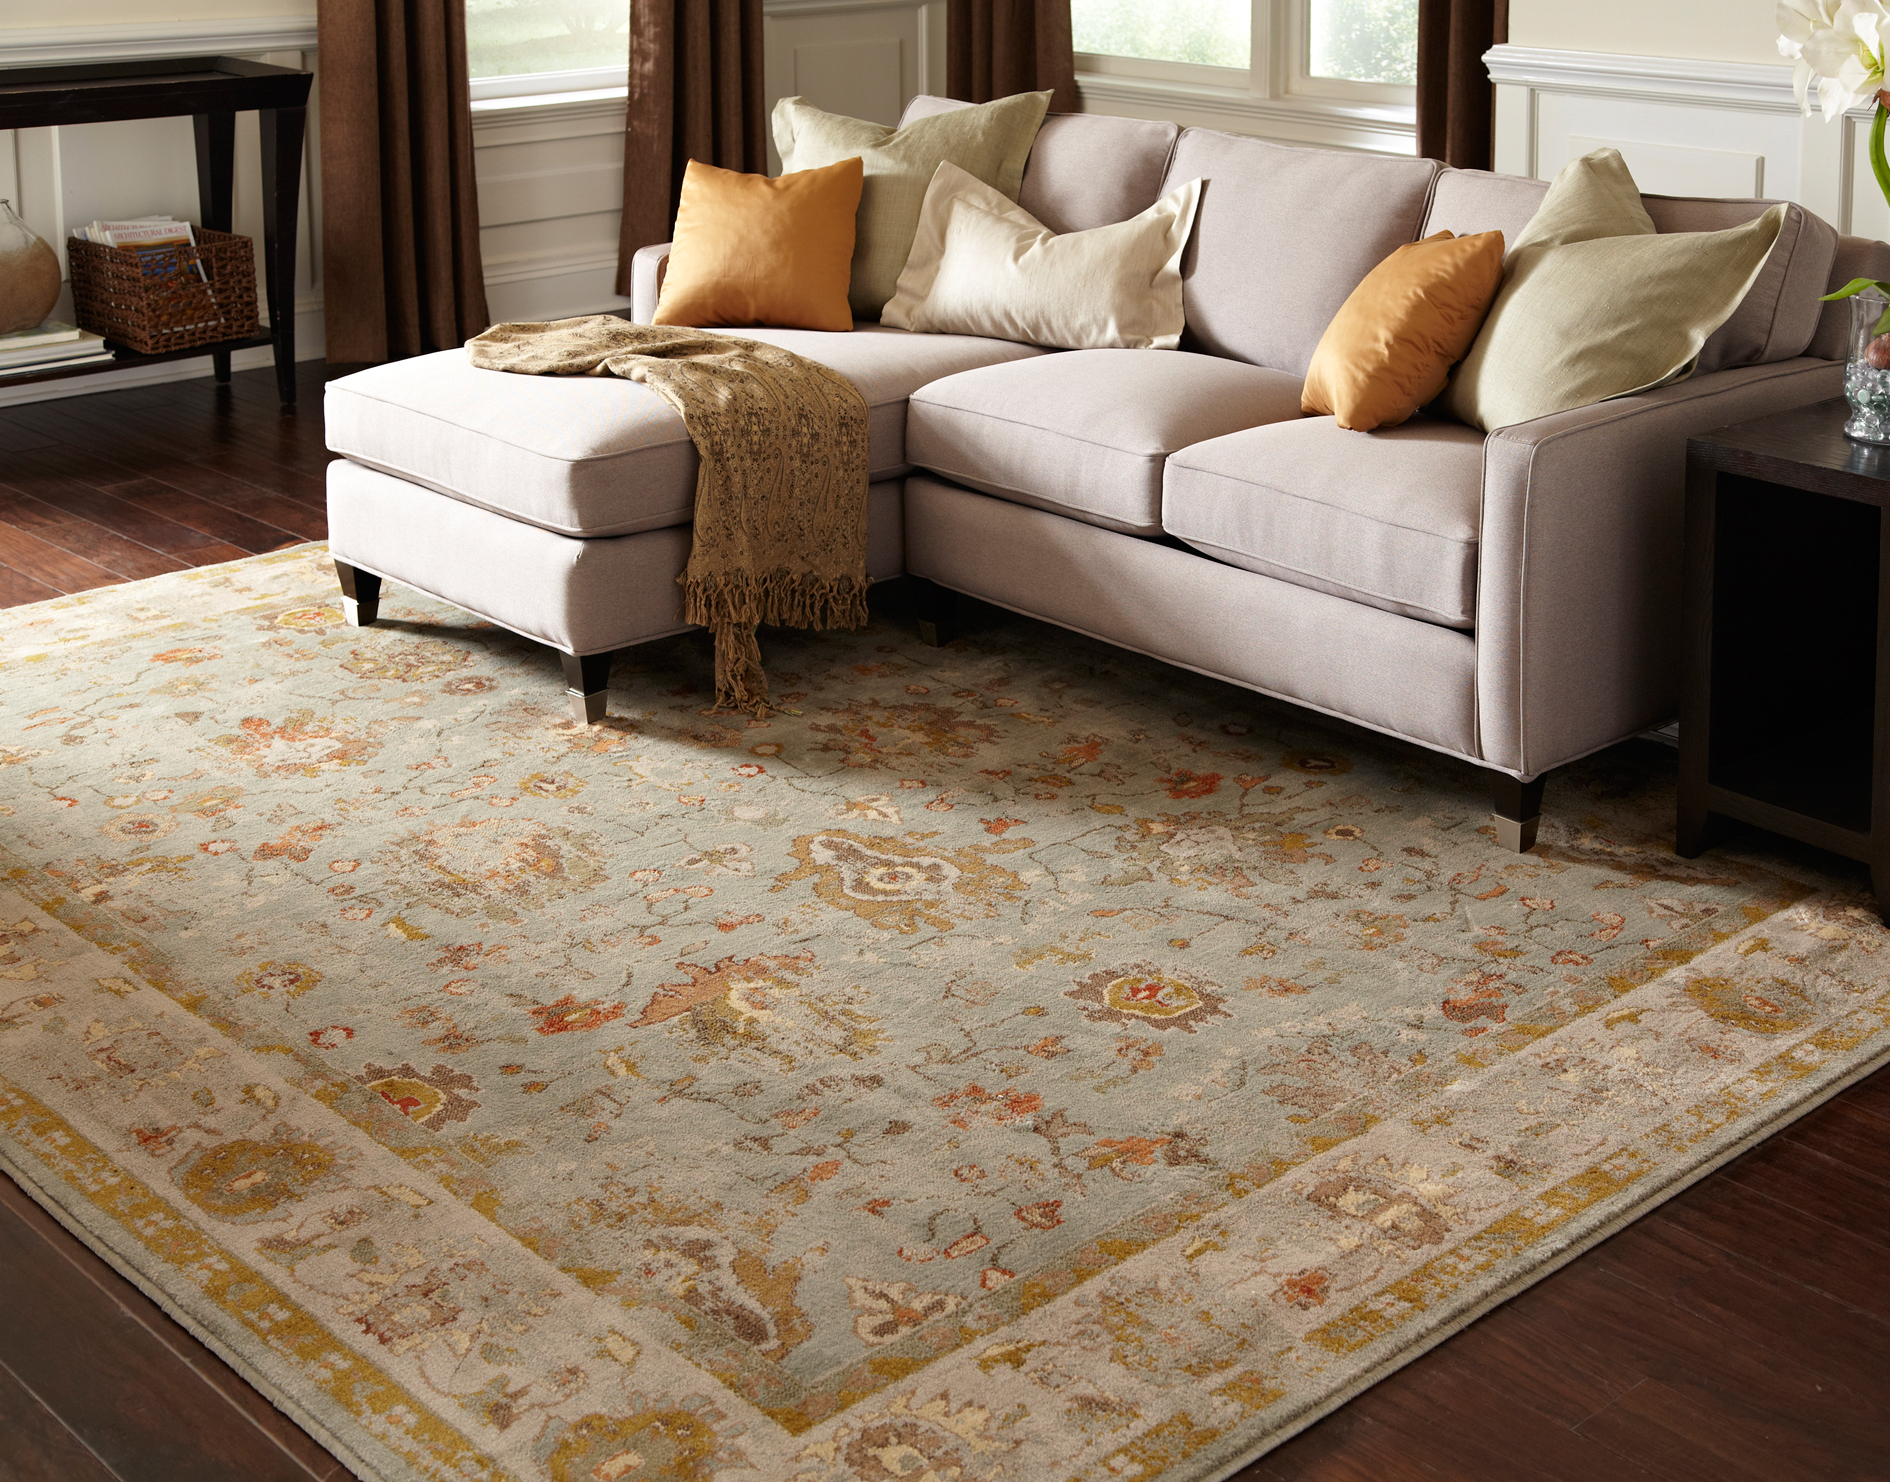 7 By 10 Rugs Area Rug Ideas